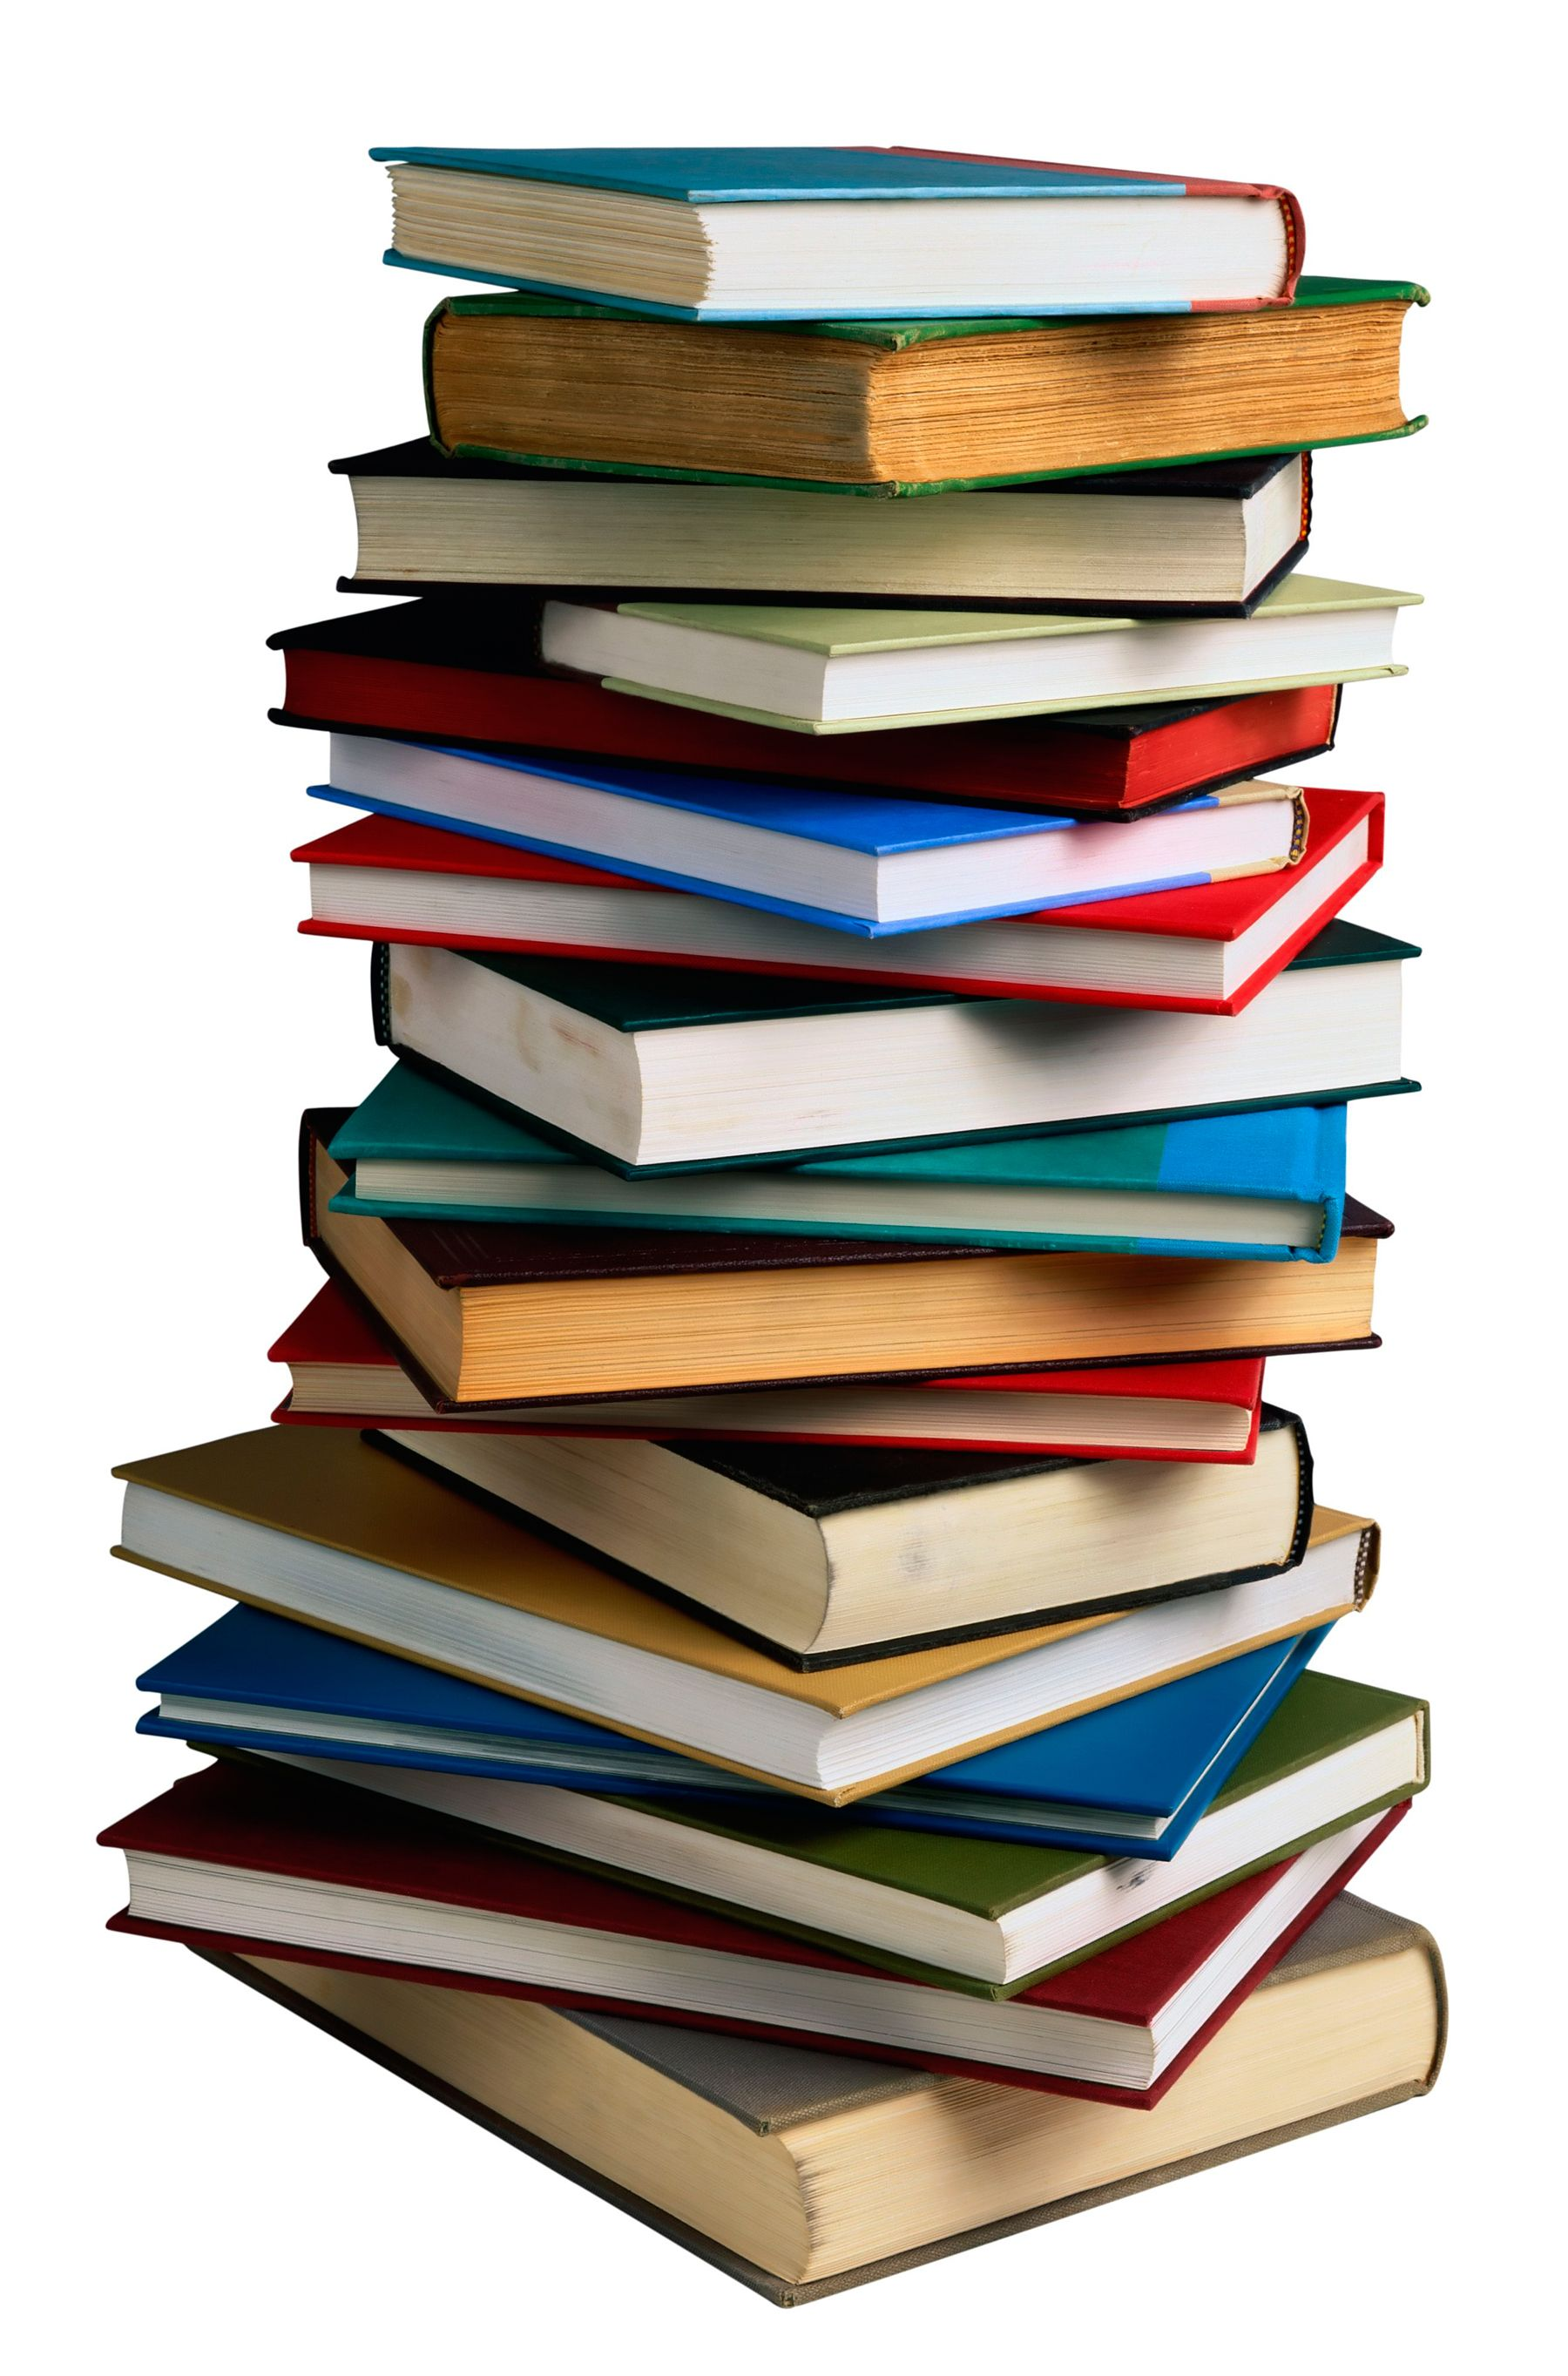 Free of books download. Library clipart stack book